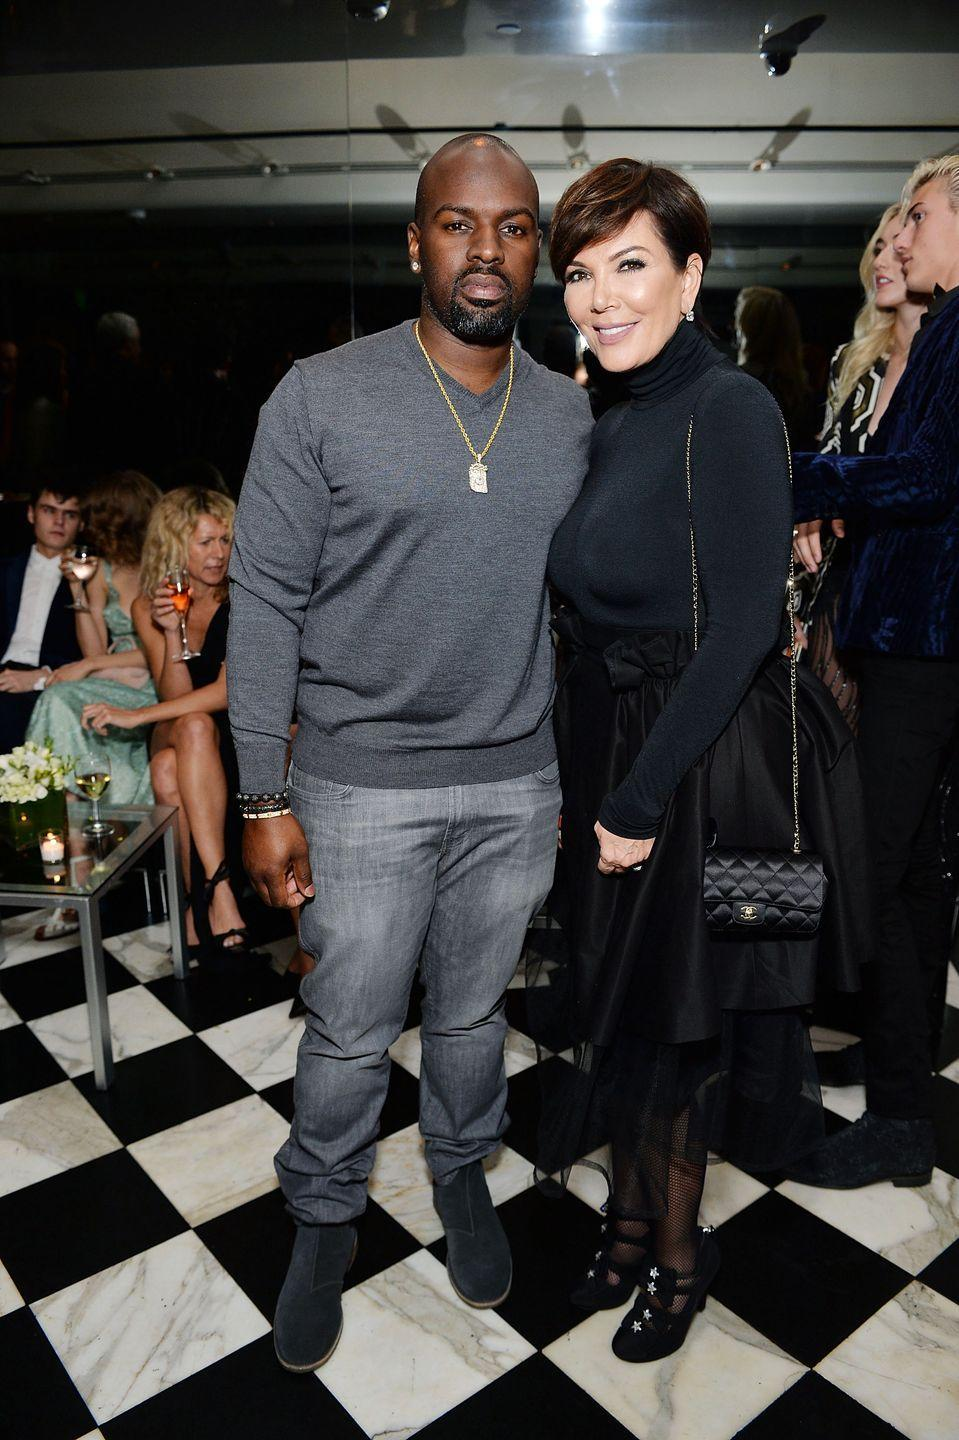 """<p>Specifically, so she can have sex with her boyfriend, Corey Gamble. <a href=""""https://www.mirror.co.uk/tv/tv-news/frisky-kris-jenner-demands-film-21845597"""" rel=""""nofollow noopener"""" target=""""_blank"""" data-ylk=""""slk:No, literally, this is a thing that happened"""" class=""""link rapid-noclick-resp"""">No, literally, this is a thing that happened</a>.</p>"""